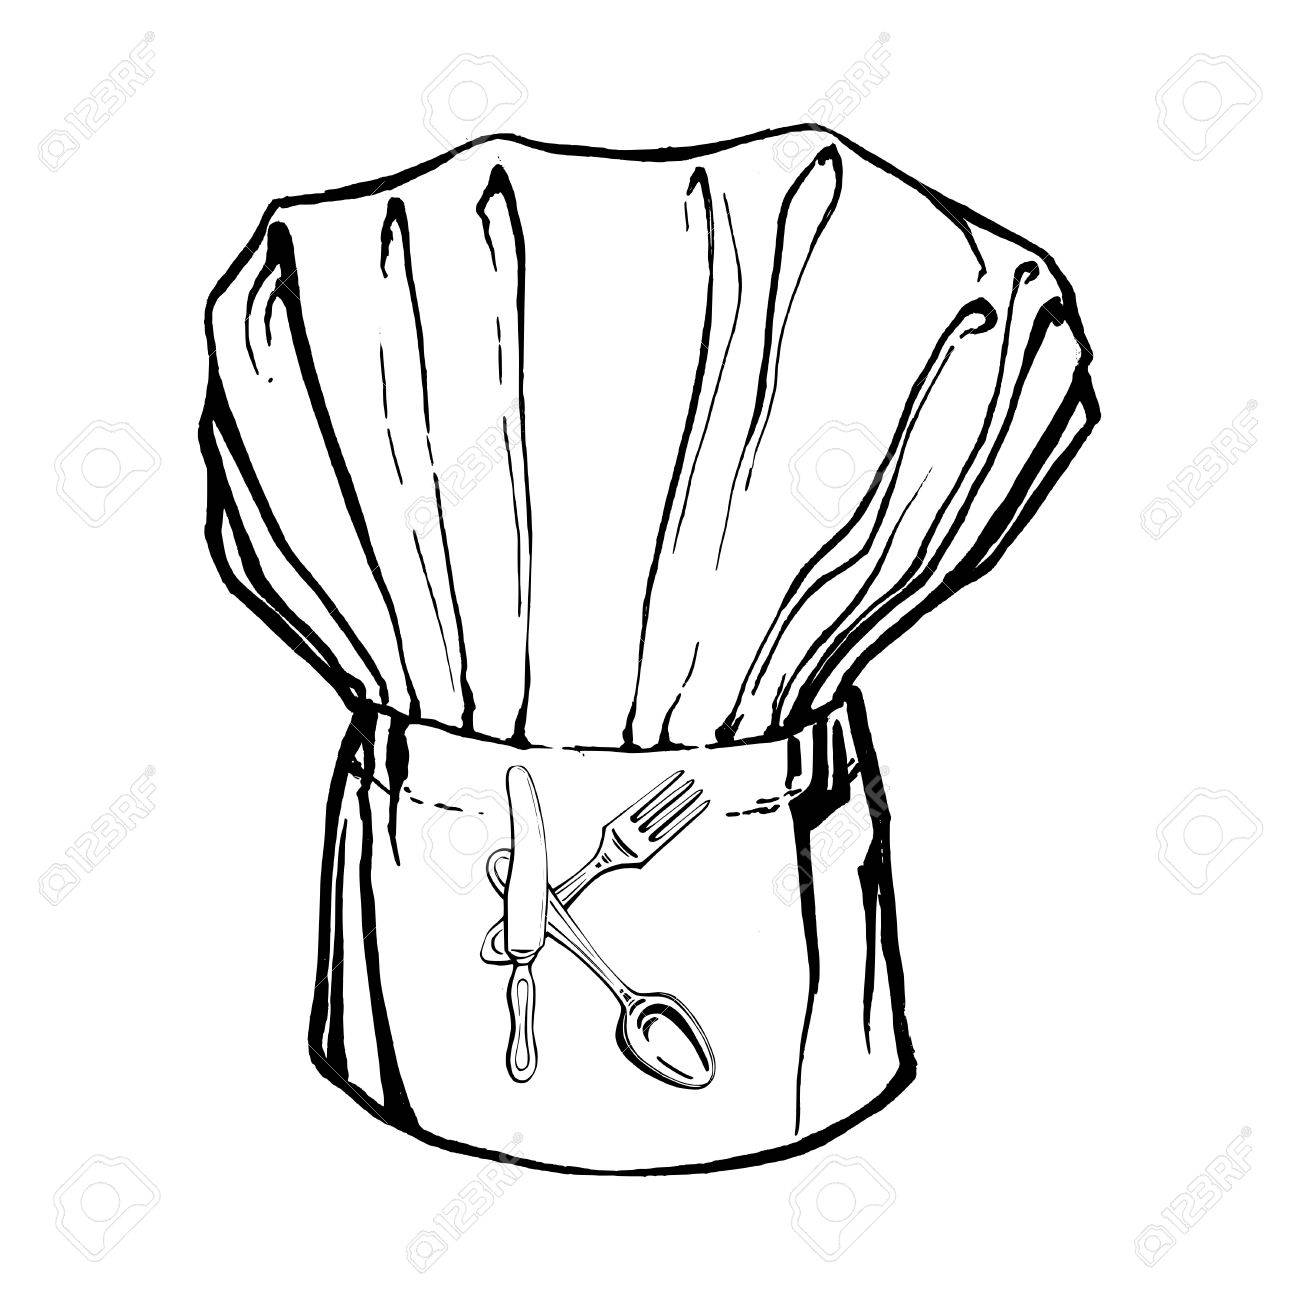 1299x1300 Hand Drawn, Vector, Sketch Illustration Of Chef's Hat